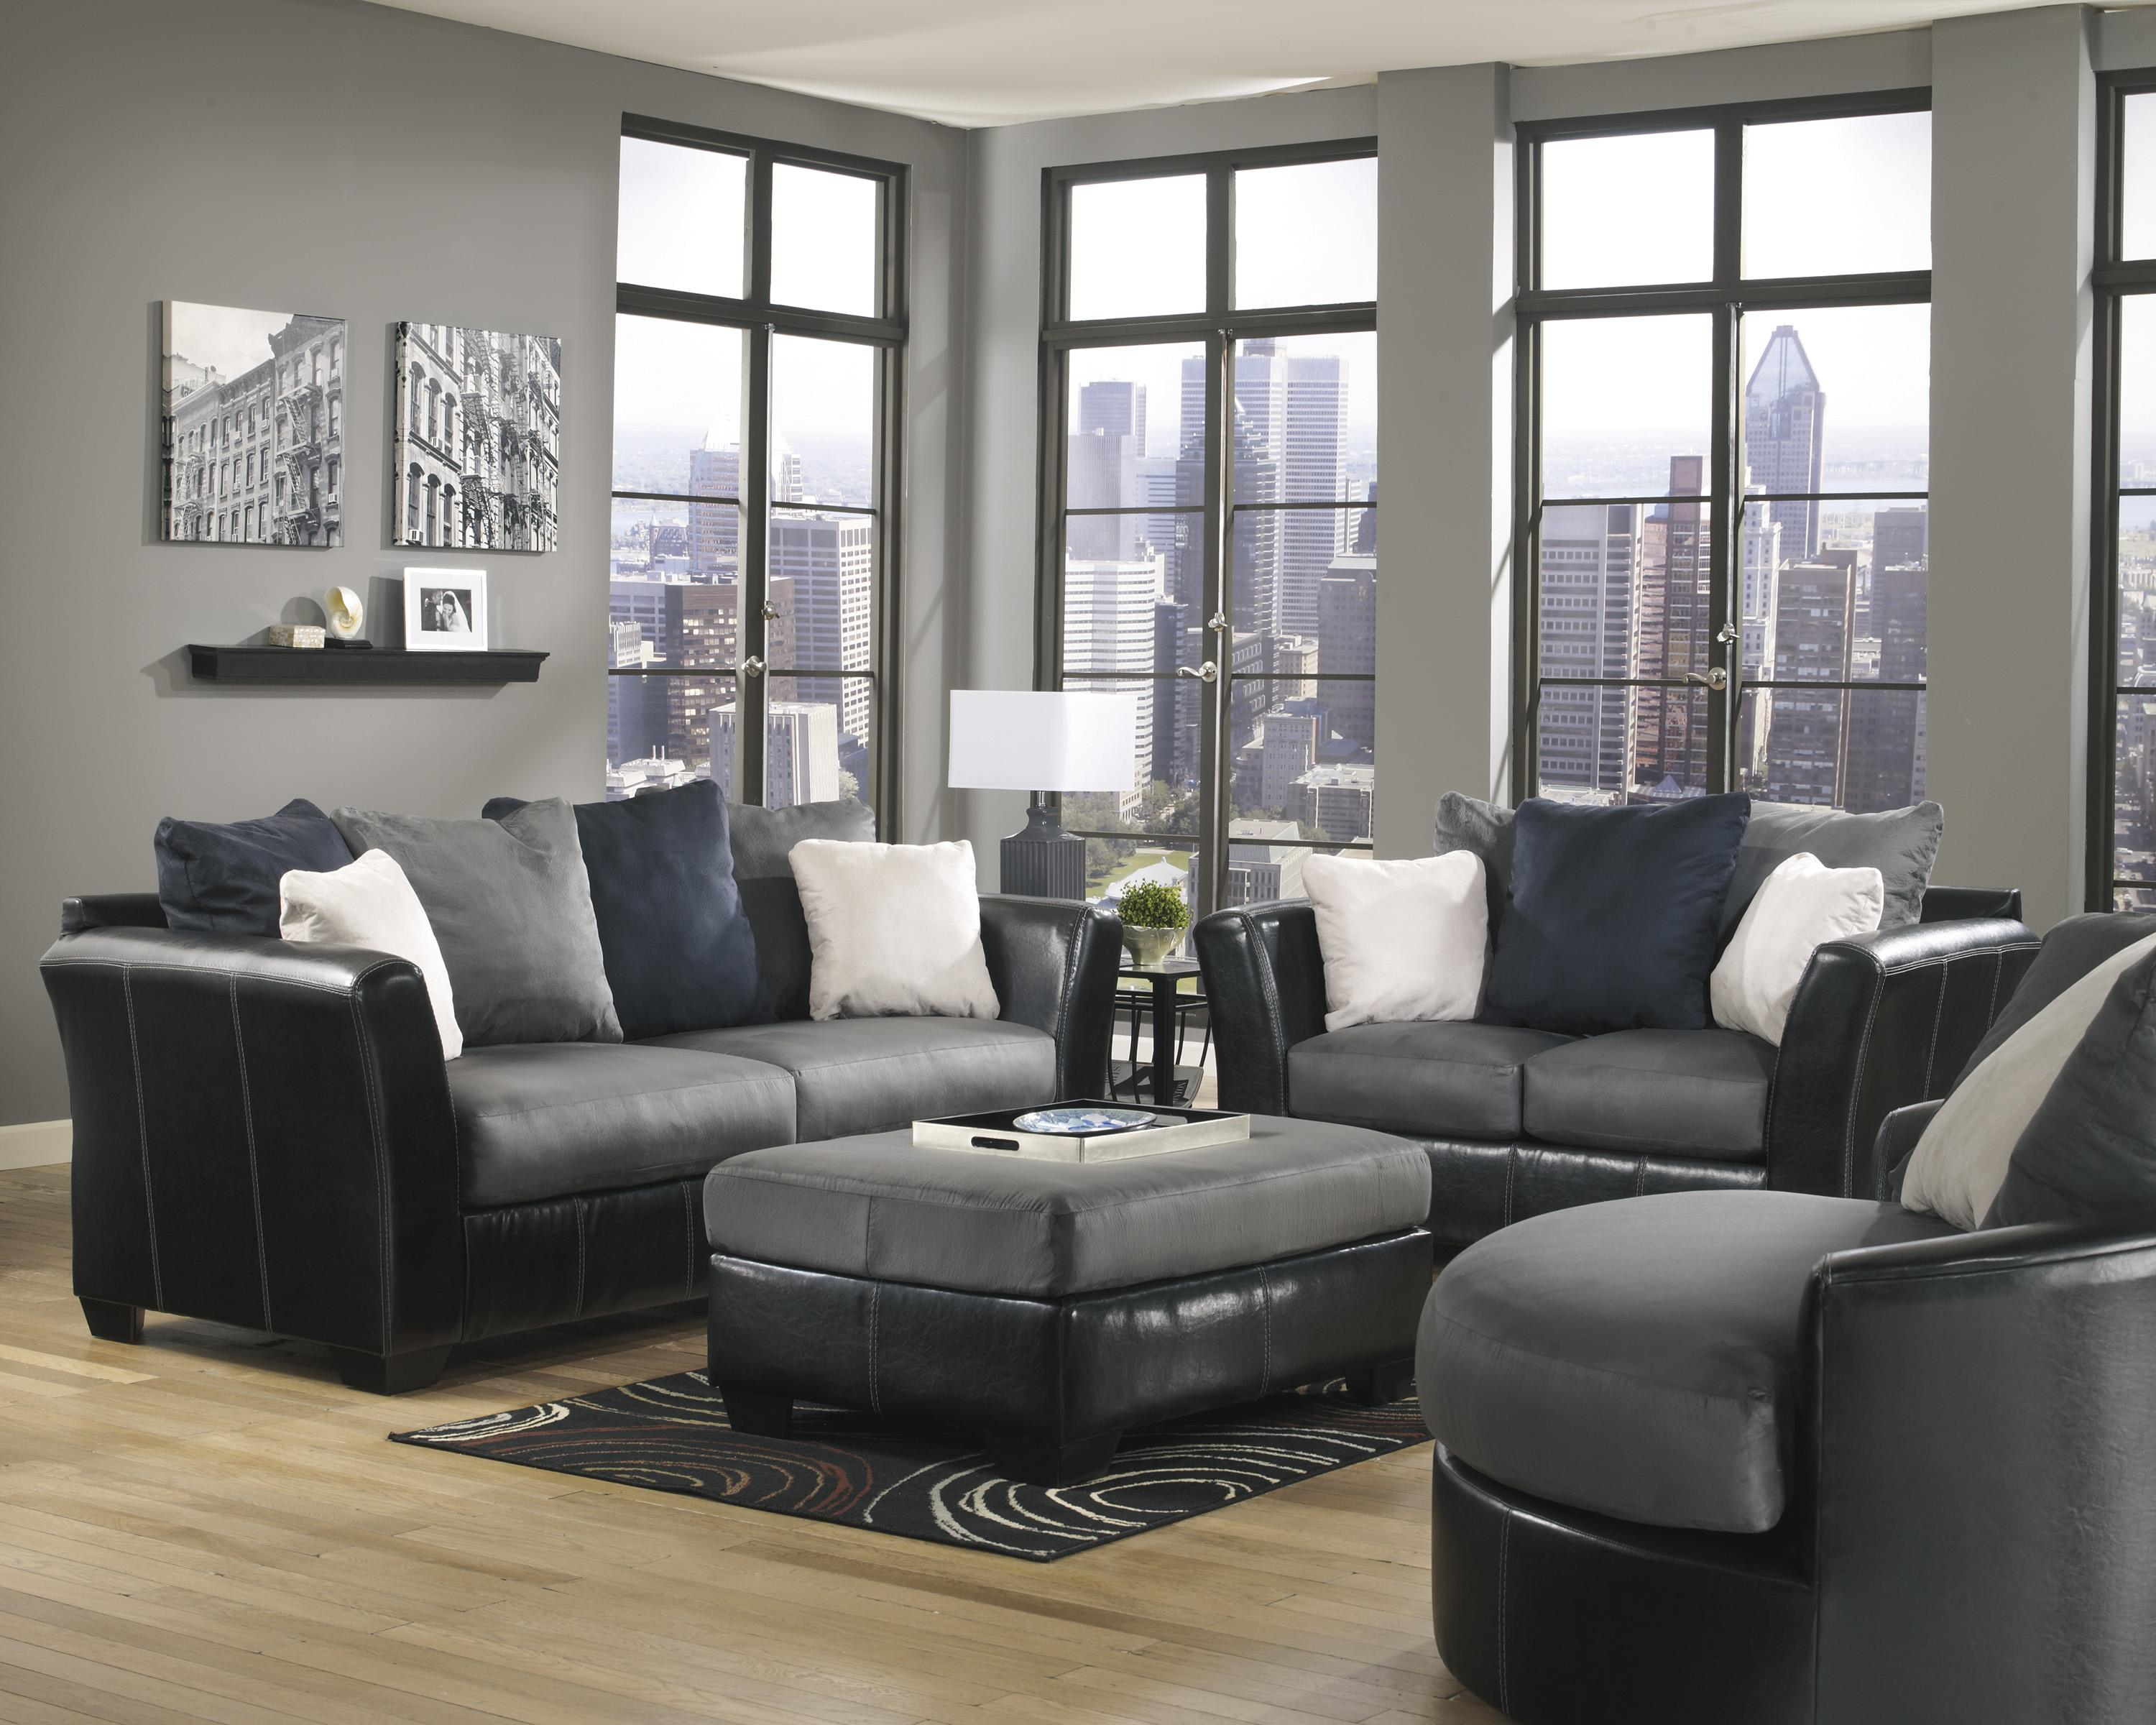 Benchcraft Masoli - Cobblestone Stationary Living Room Group - Item Number: 14200 Living Room Group 3